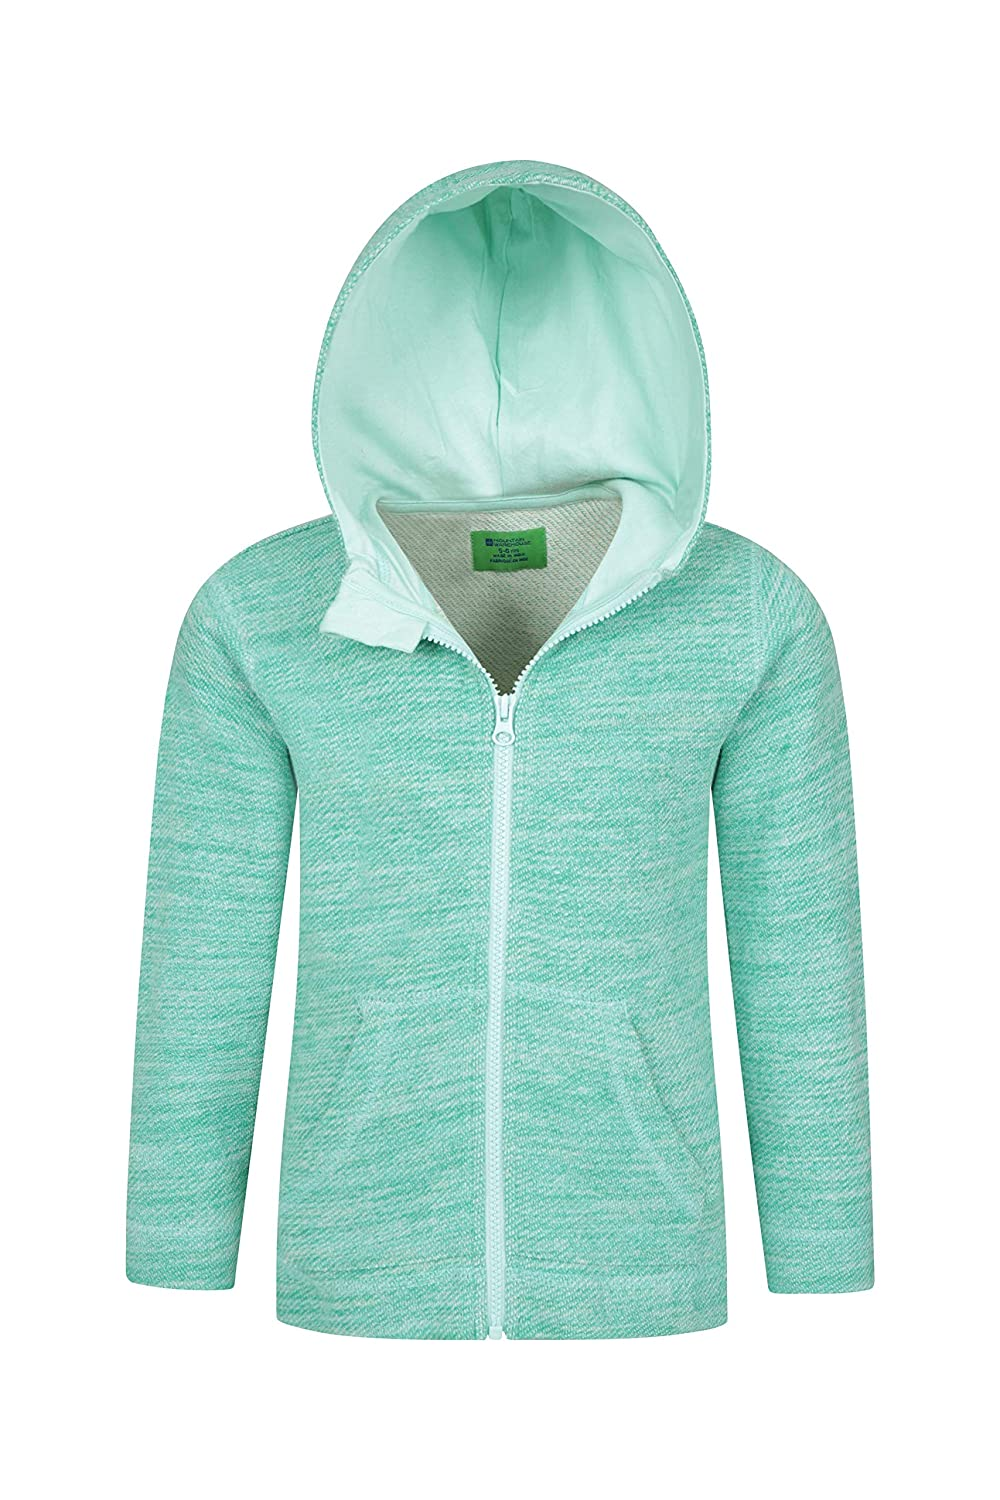 Lightweight Pullover Mountain Warehouse Meadow Kids Hoodie for Travelling Walking Front Pockets Warm /& Cosy Jacket 100/% Cotton Childrens Spring Sweatshirt